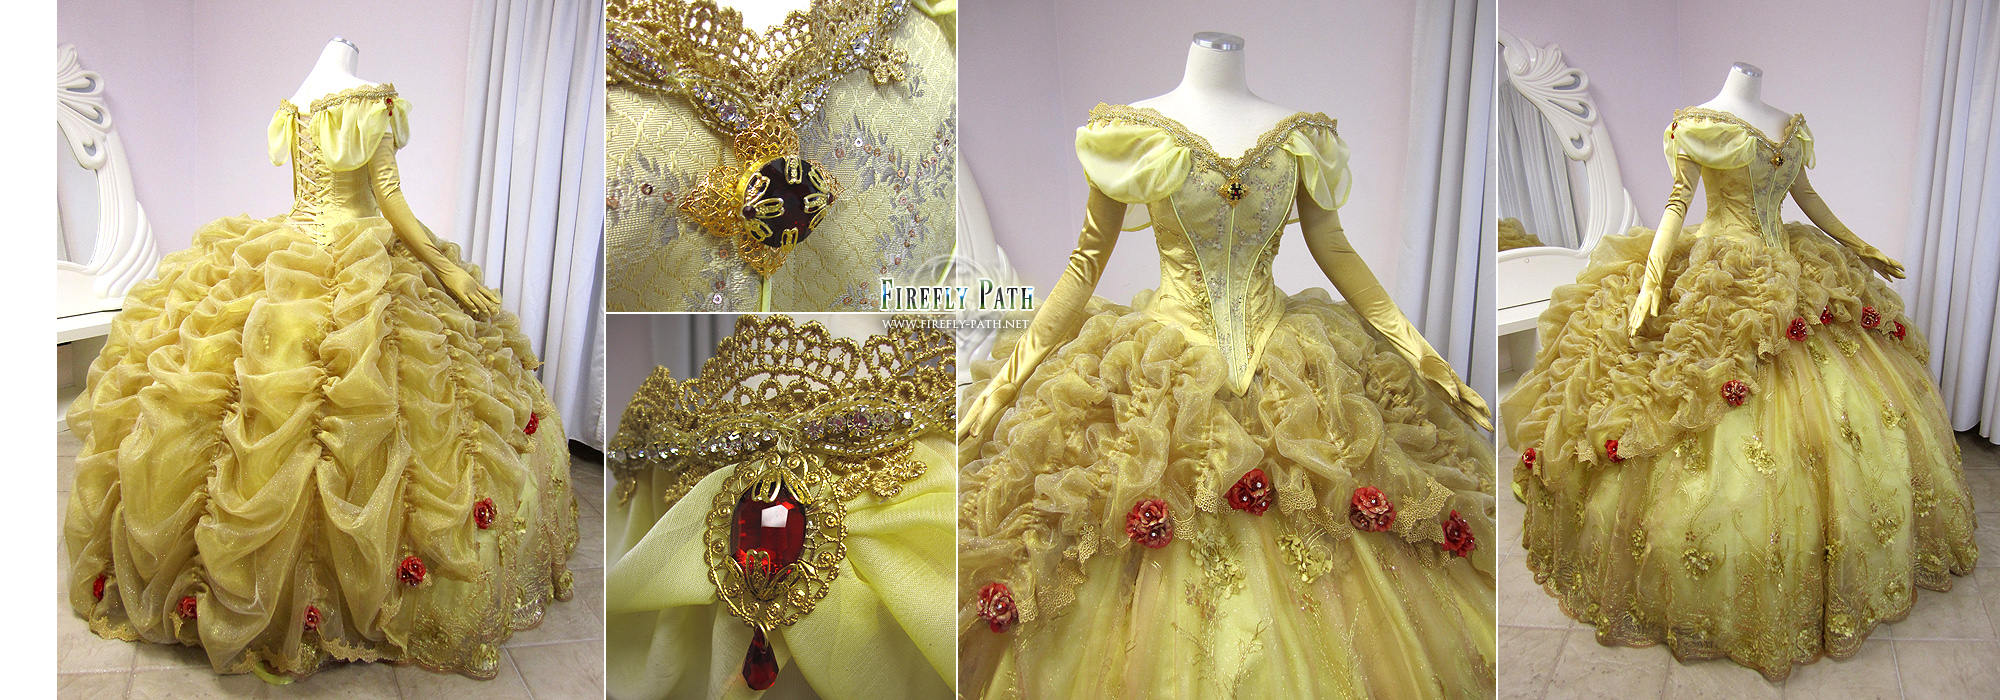 Original Firefly Path Belle Gown By Firefly Path On Deviantart